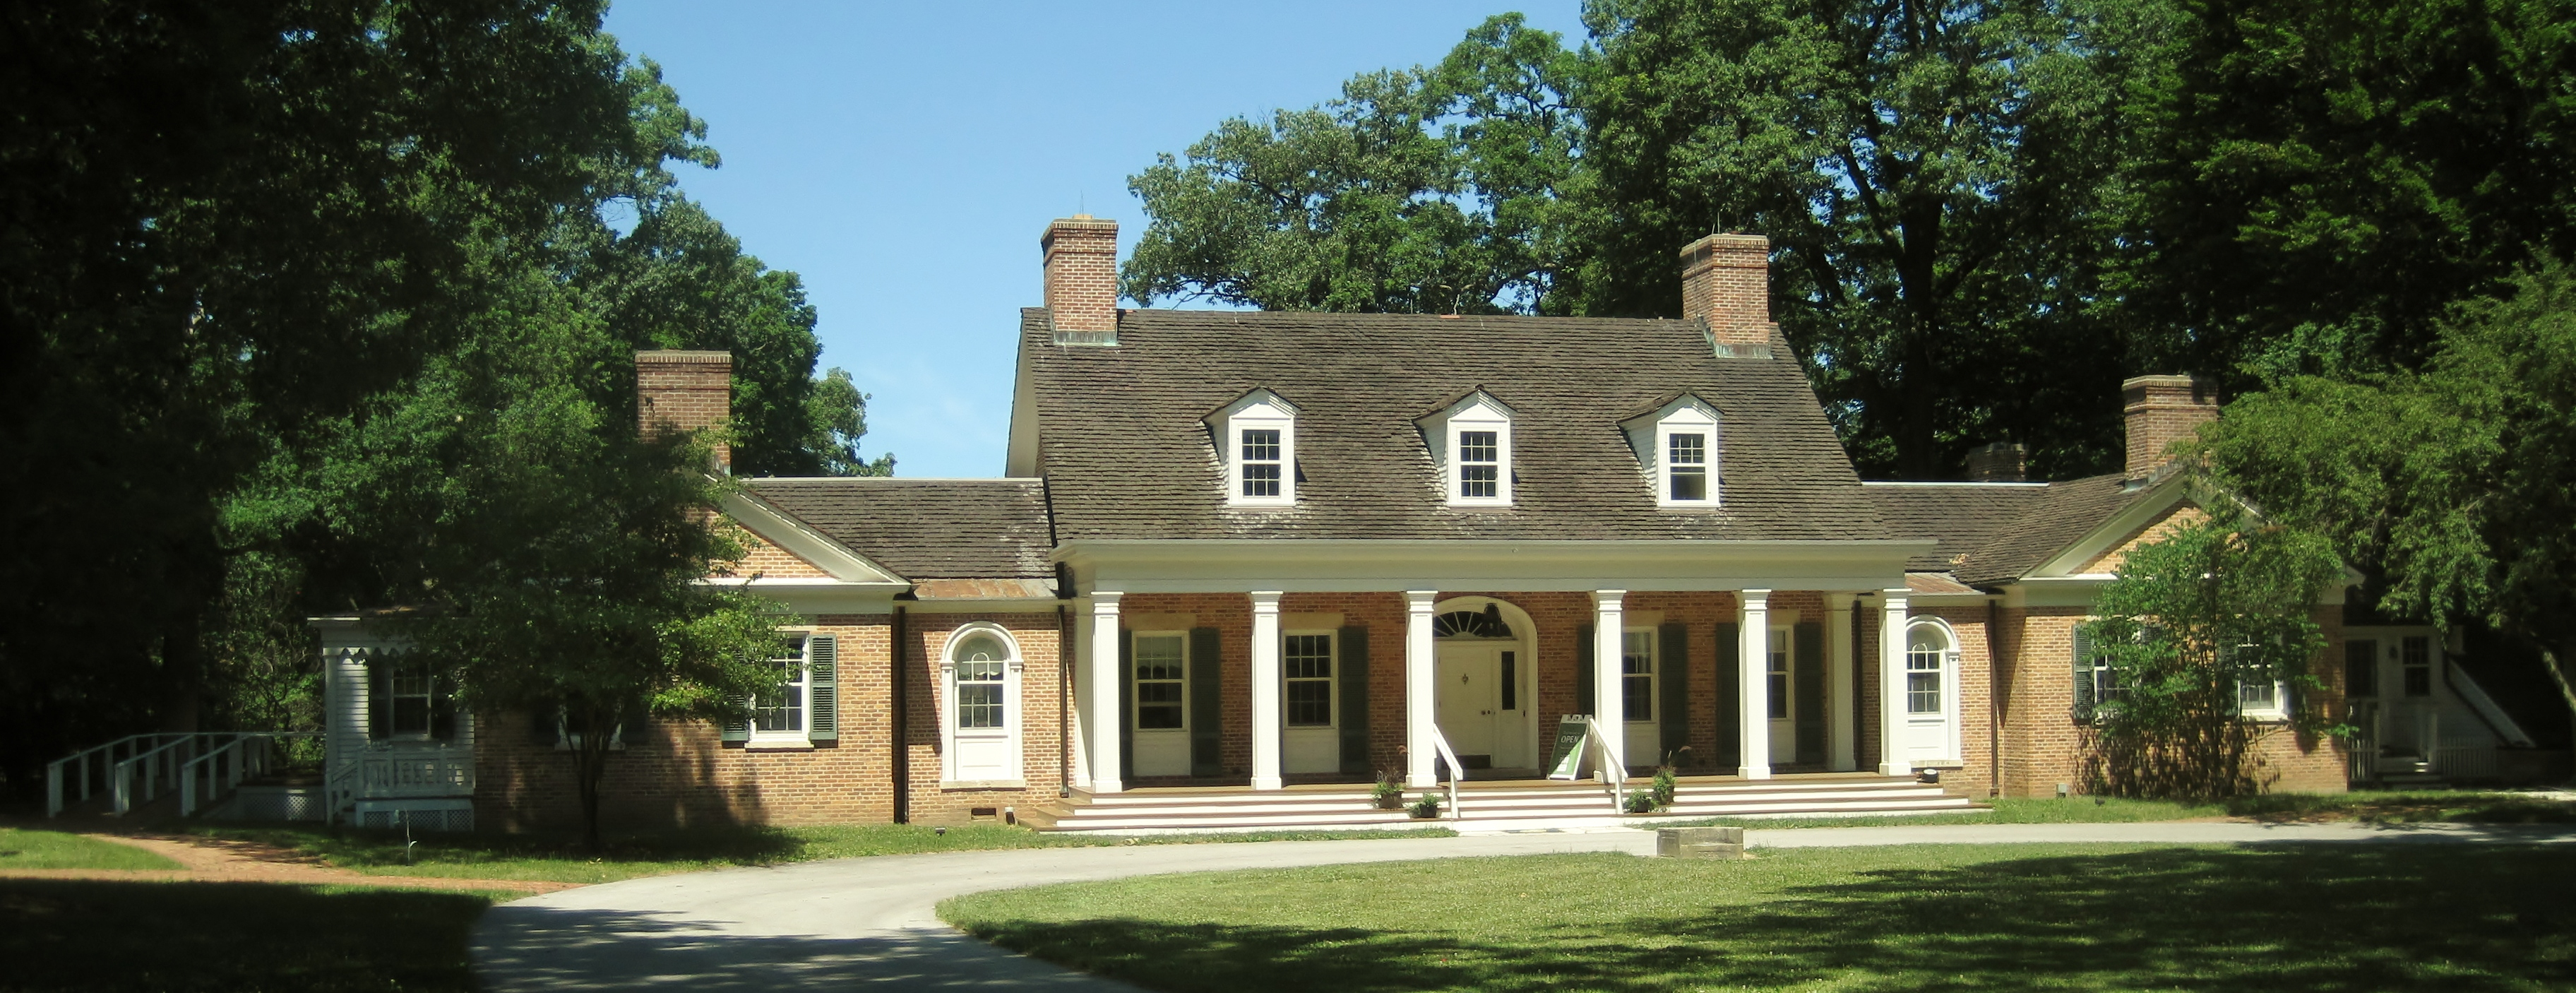 http://upload.wikimedia.org/wikipedia/commons/3/39/Edward_L._Ryerson_Country_House.JPG